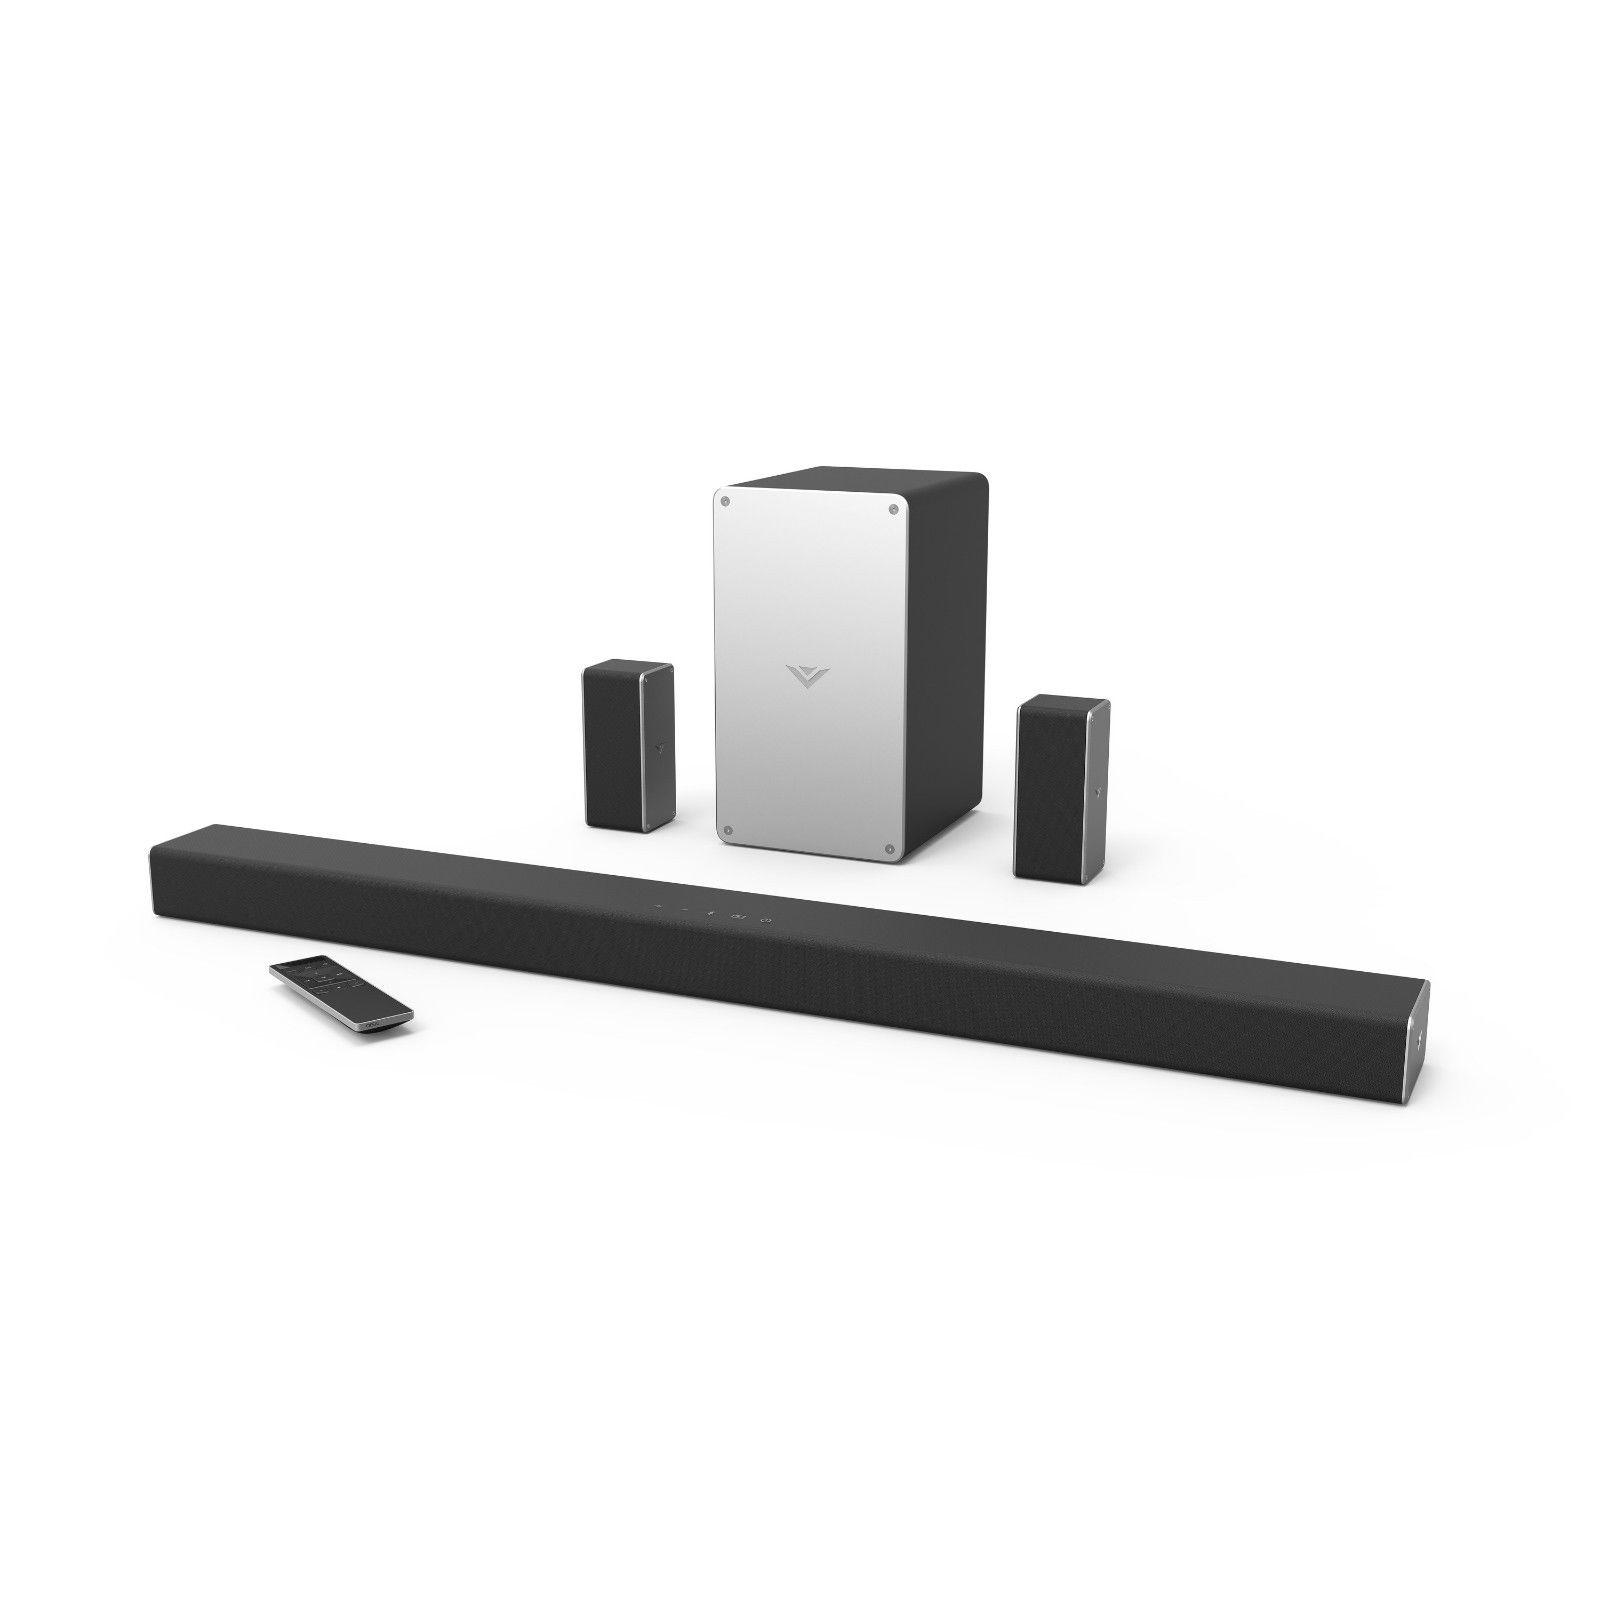 Vizio 5.1 Surround Sound Bar Speaker System Wireless Subwoof